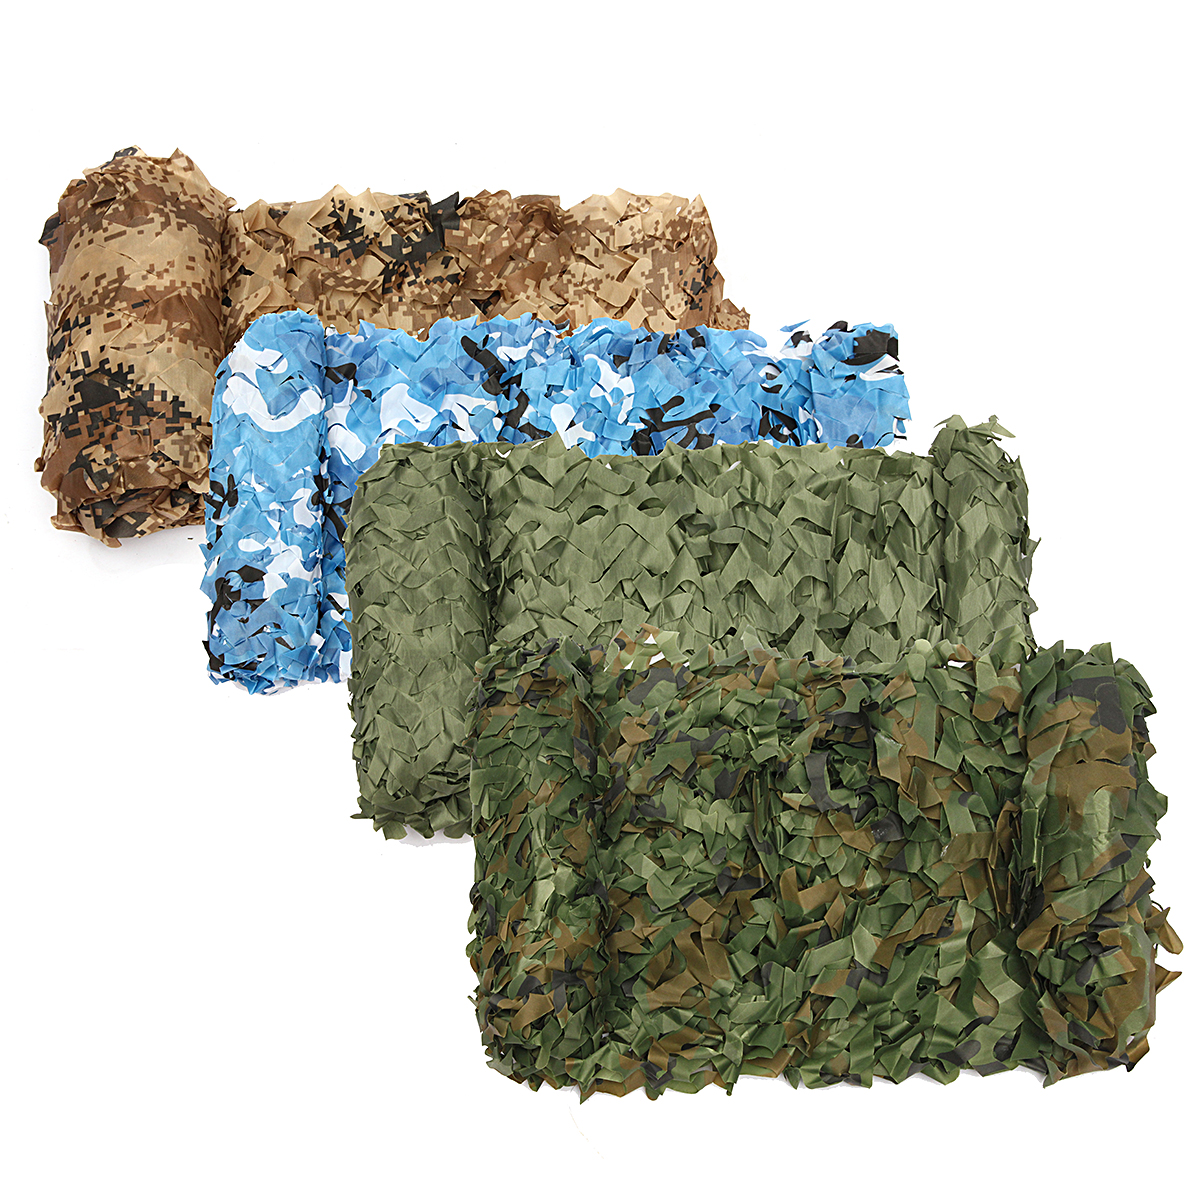 4mx2m /5mx2m Hunting Military Camouflage Nets Woodland Army training Camo netting Car Covers Tent Shade Camping Sun Shelter 4mx2m 5mx2m hunting military camouflage nets woodland army camo netting camping sun sheltertent shade sun shelter